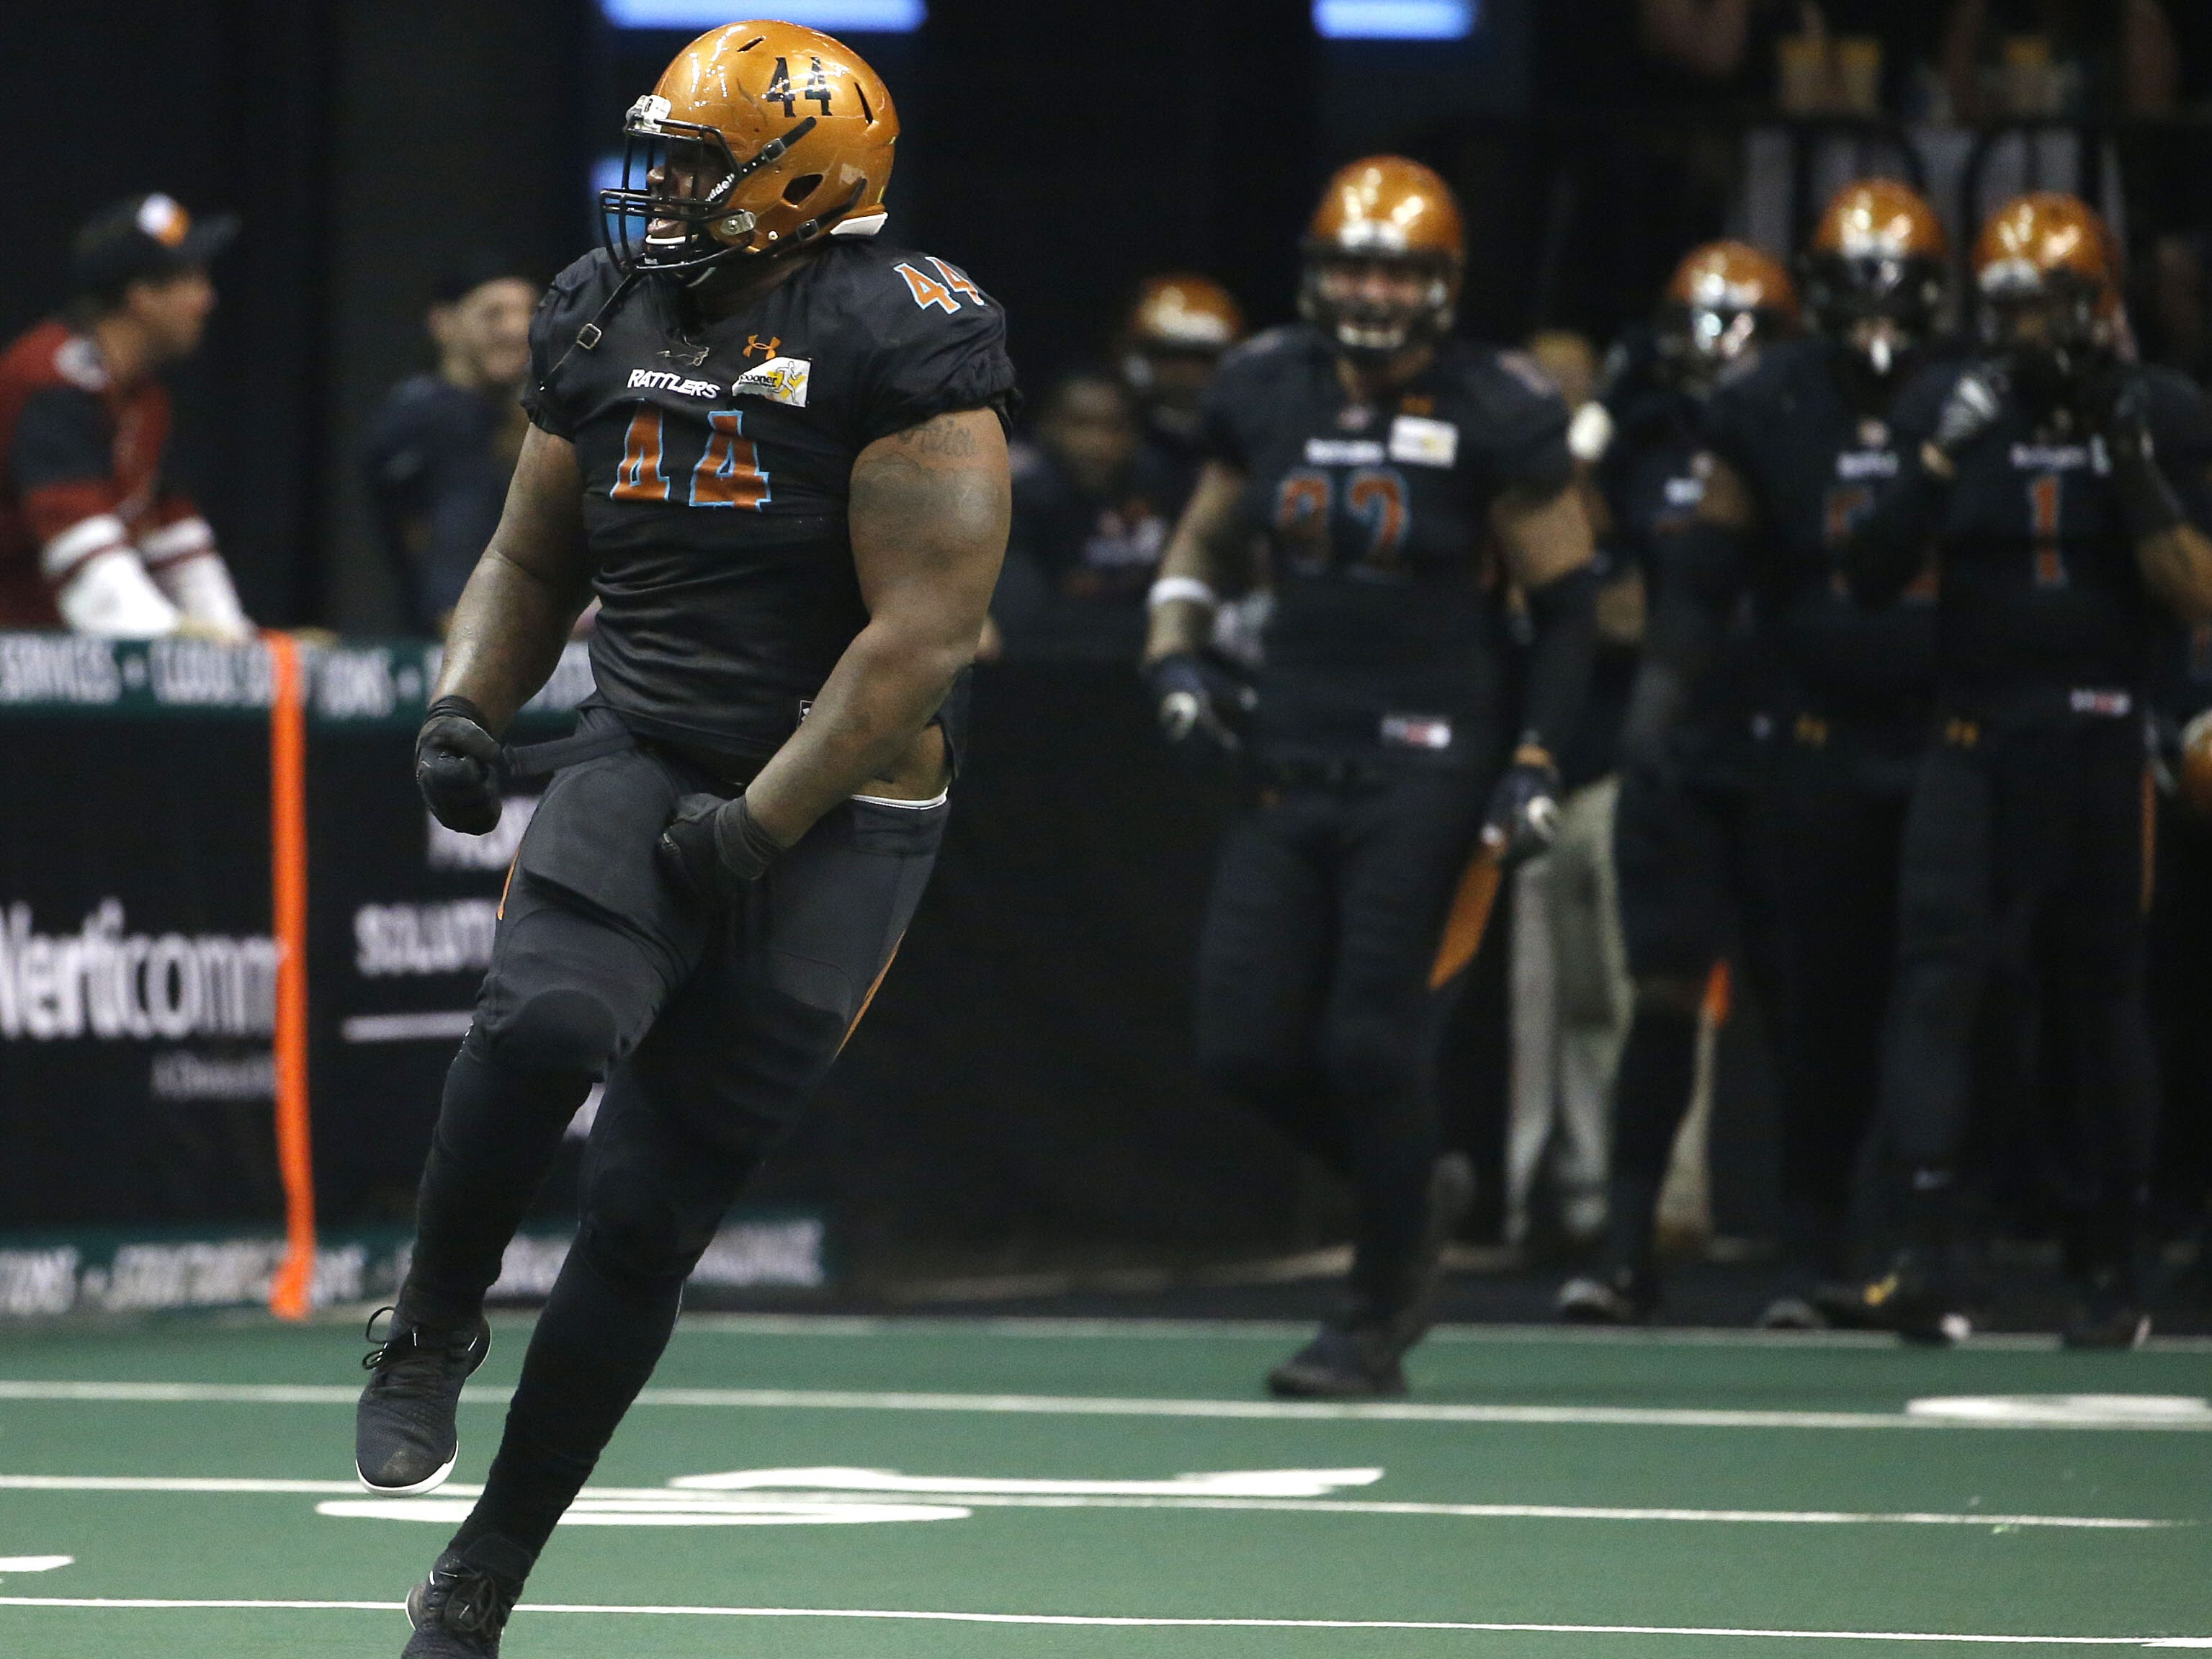 Rattlers' Lance McDowell (44) reacts after forcing a turnover against the Sugar Skulls during the first half at Talking Stick Resort Arena in Phoenix, Ariz. on March 16, 2019.